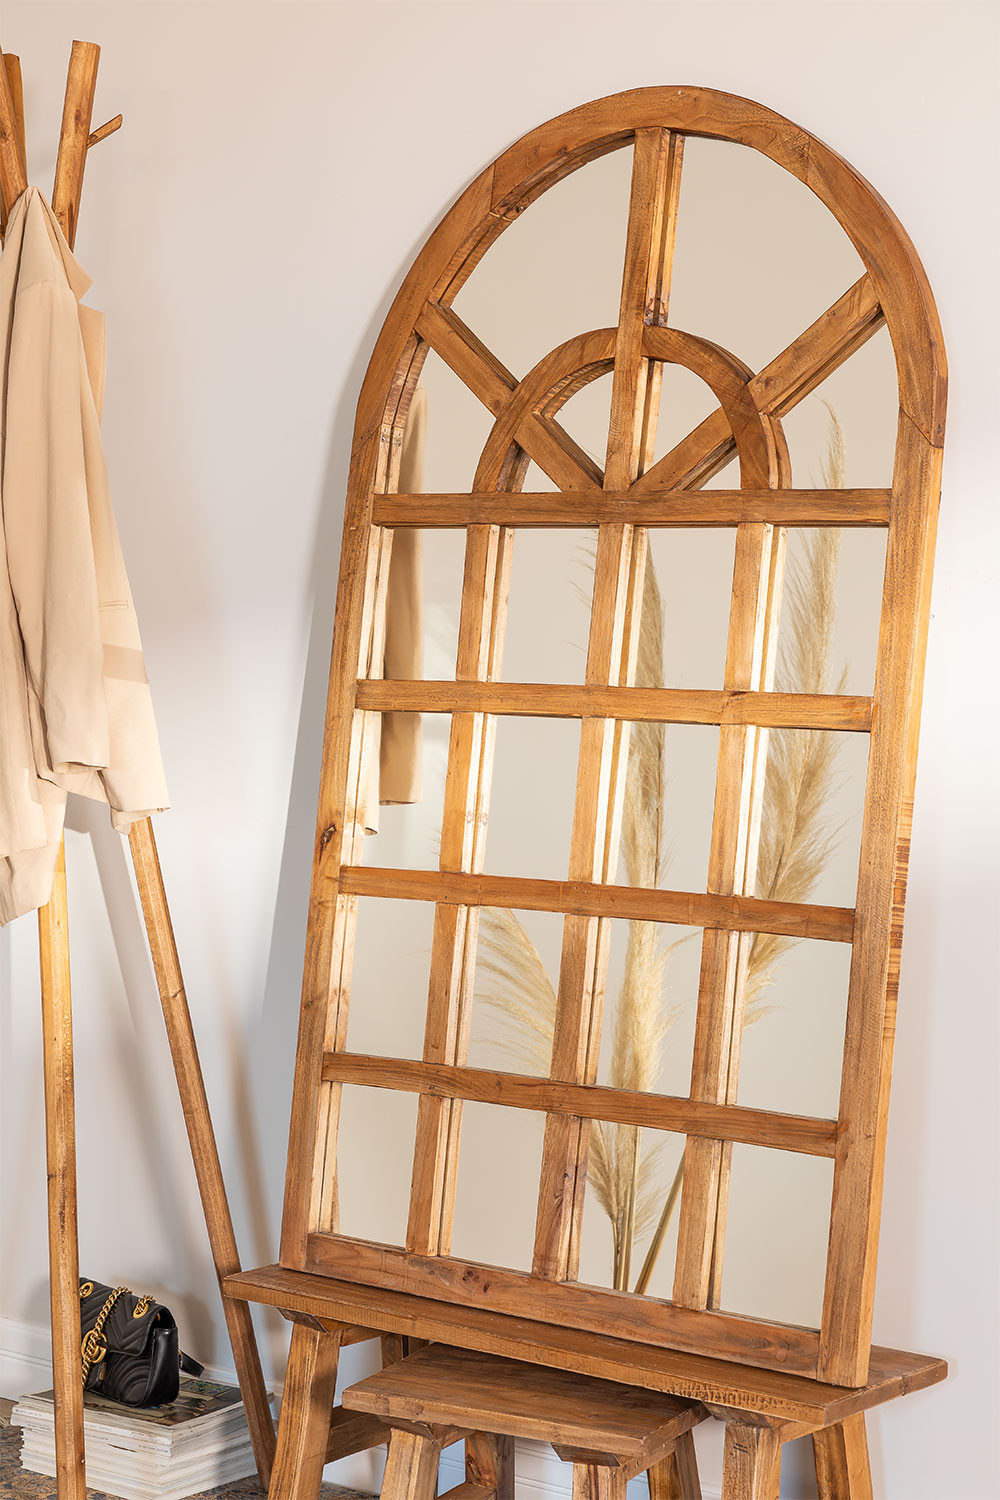 Recycled Wood Mirror (149x87 cm) Vient, gallery image 1